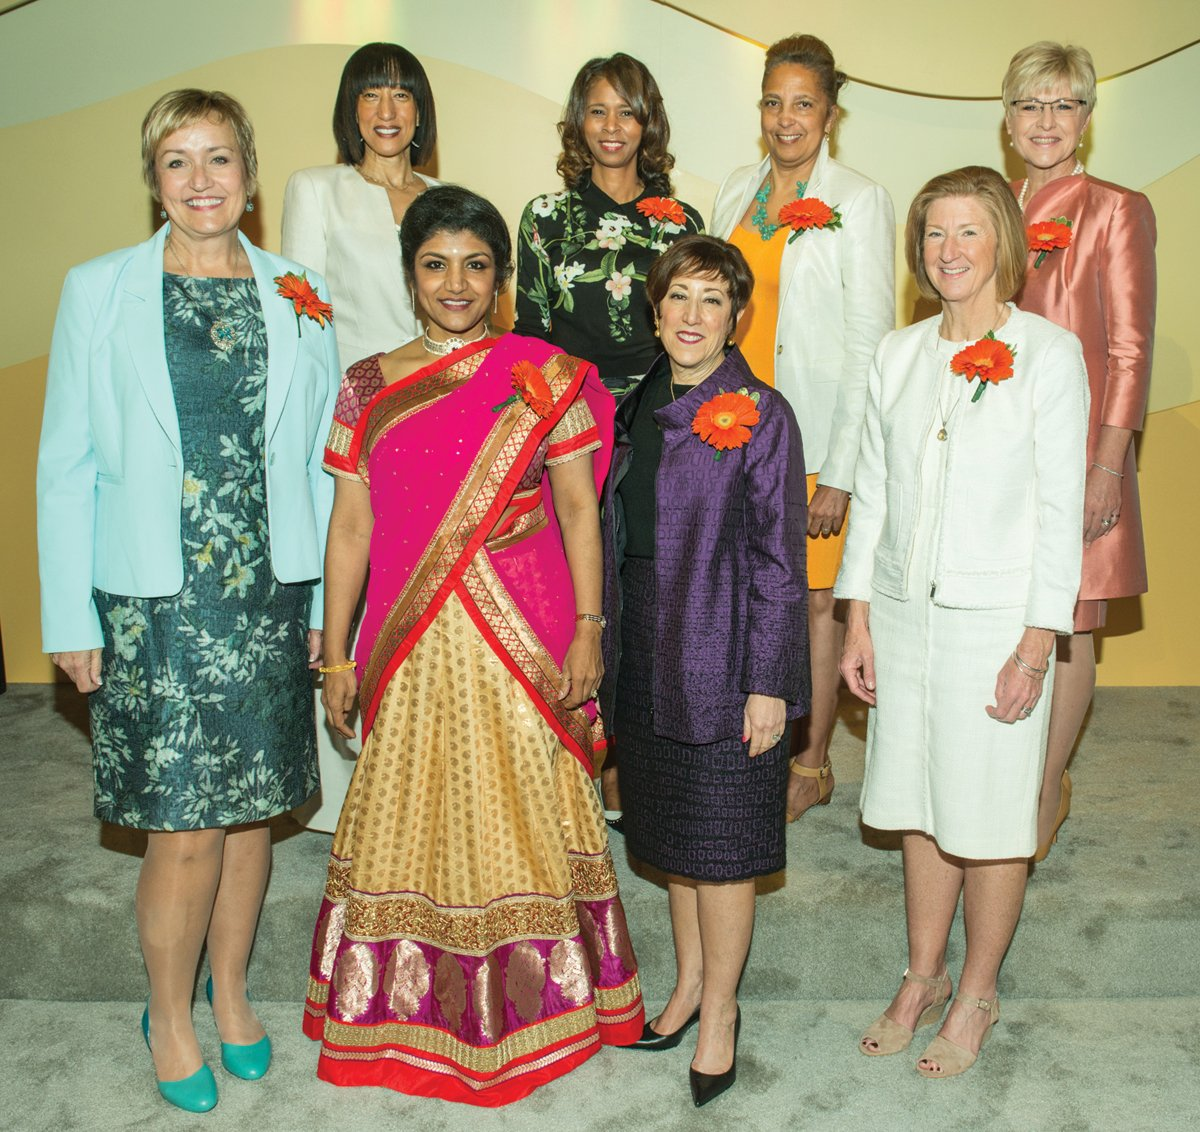 Honorees Sandy Berlin Walker, president/CEO, YMCA of Greater Cincinnati; Dr. Lakshmi Kode Sammarco, Hamilton County coroner; Susan Zaunbrecher, partner, corporate department chair, Dinsmore & Shohl; Moira Weir, director, Hamilton County Department of Job & Family Services; (rear) Claudia Abercrumbie, president/CEO, The Abercrumbie Group; Laura Mitchell, deputy superintendent, Cincinnati Public Schools; Christi Cornette, senior VP, marketing, Cincinnati Bell; Karen Bowman, principal and sector leader, Deloitte Consulting